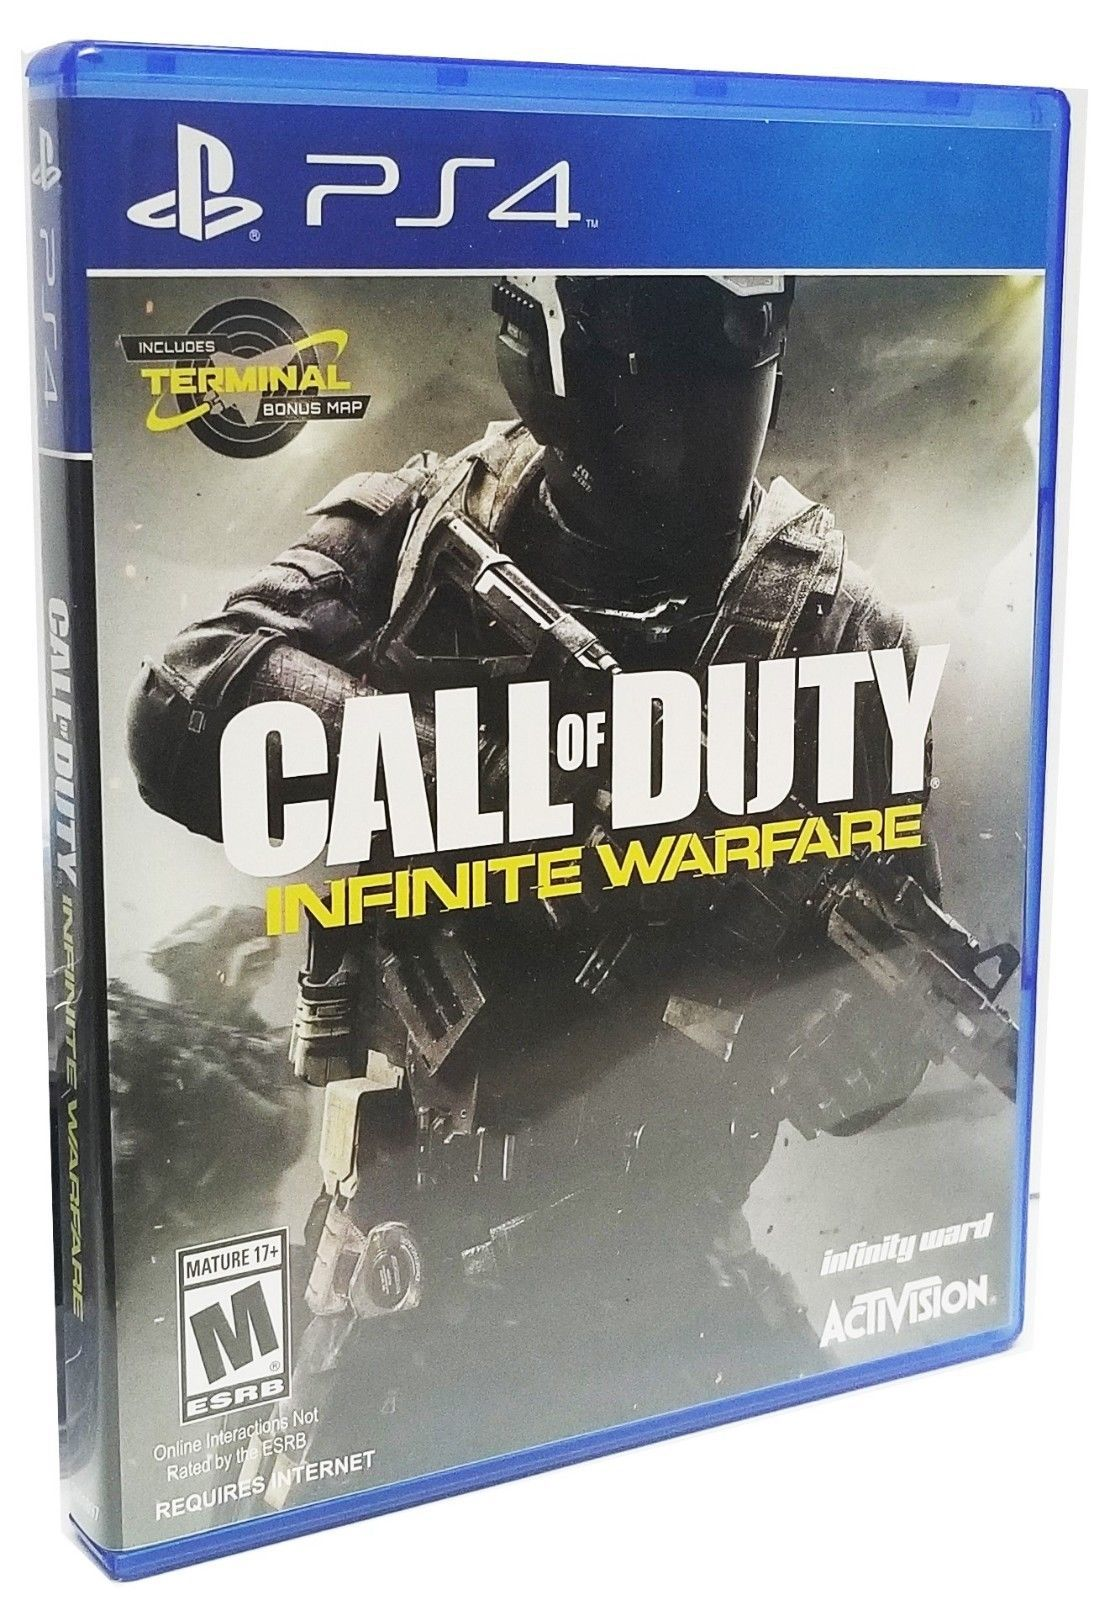 800351d51eec50fe32a5ff797133dba7 - How To Get Call Of Duty Infinite Warfare For Free